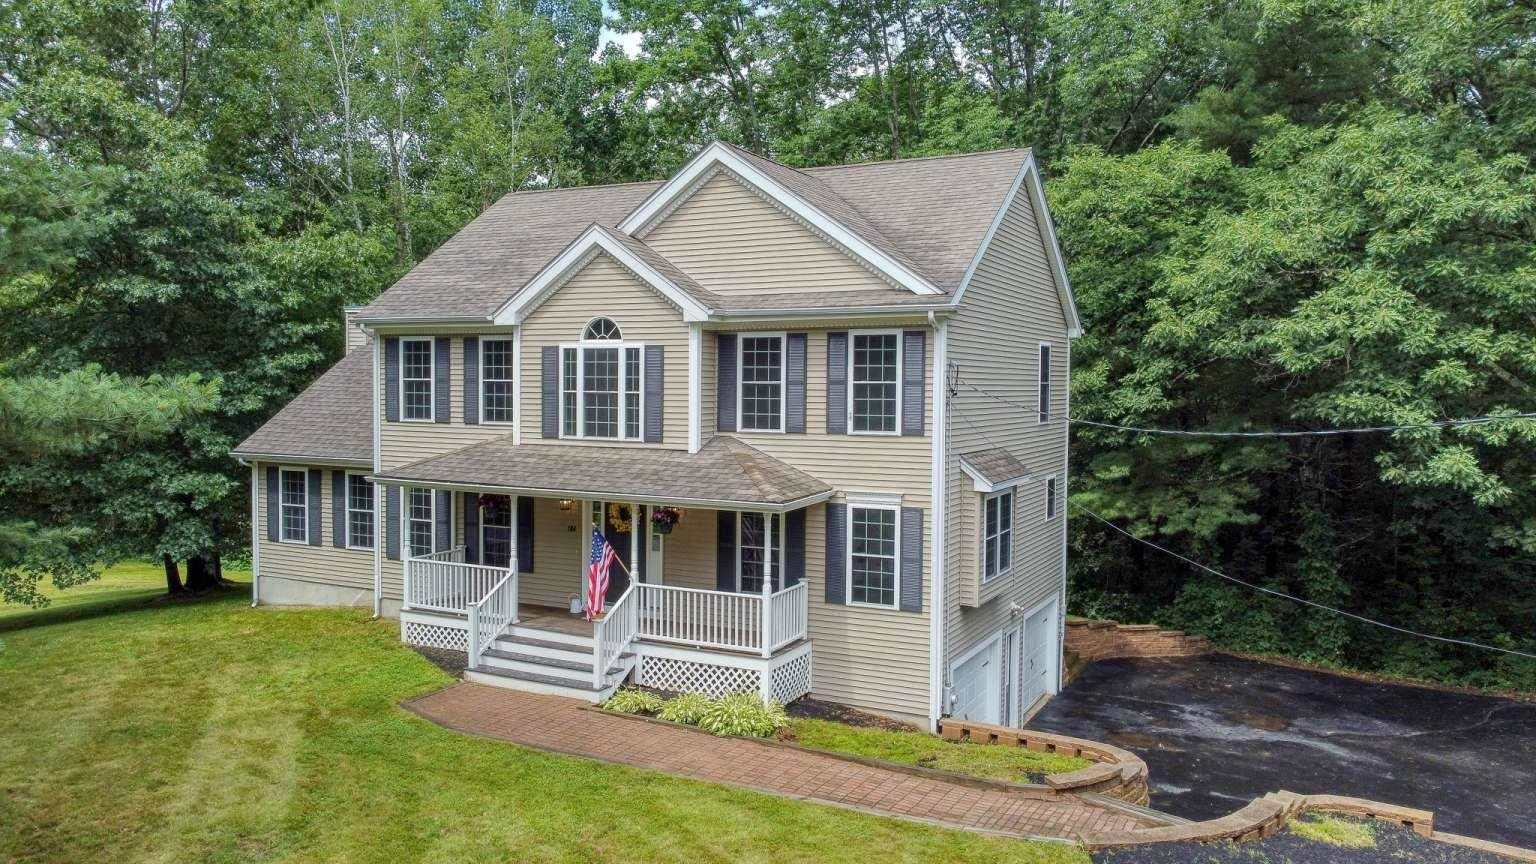 104 Old Chester Road, Derry, NH 03089 - MLS#: 4872939